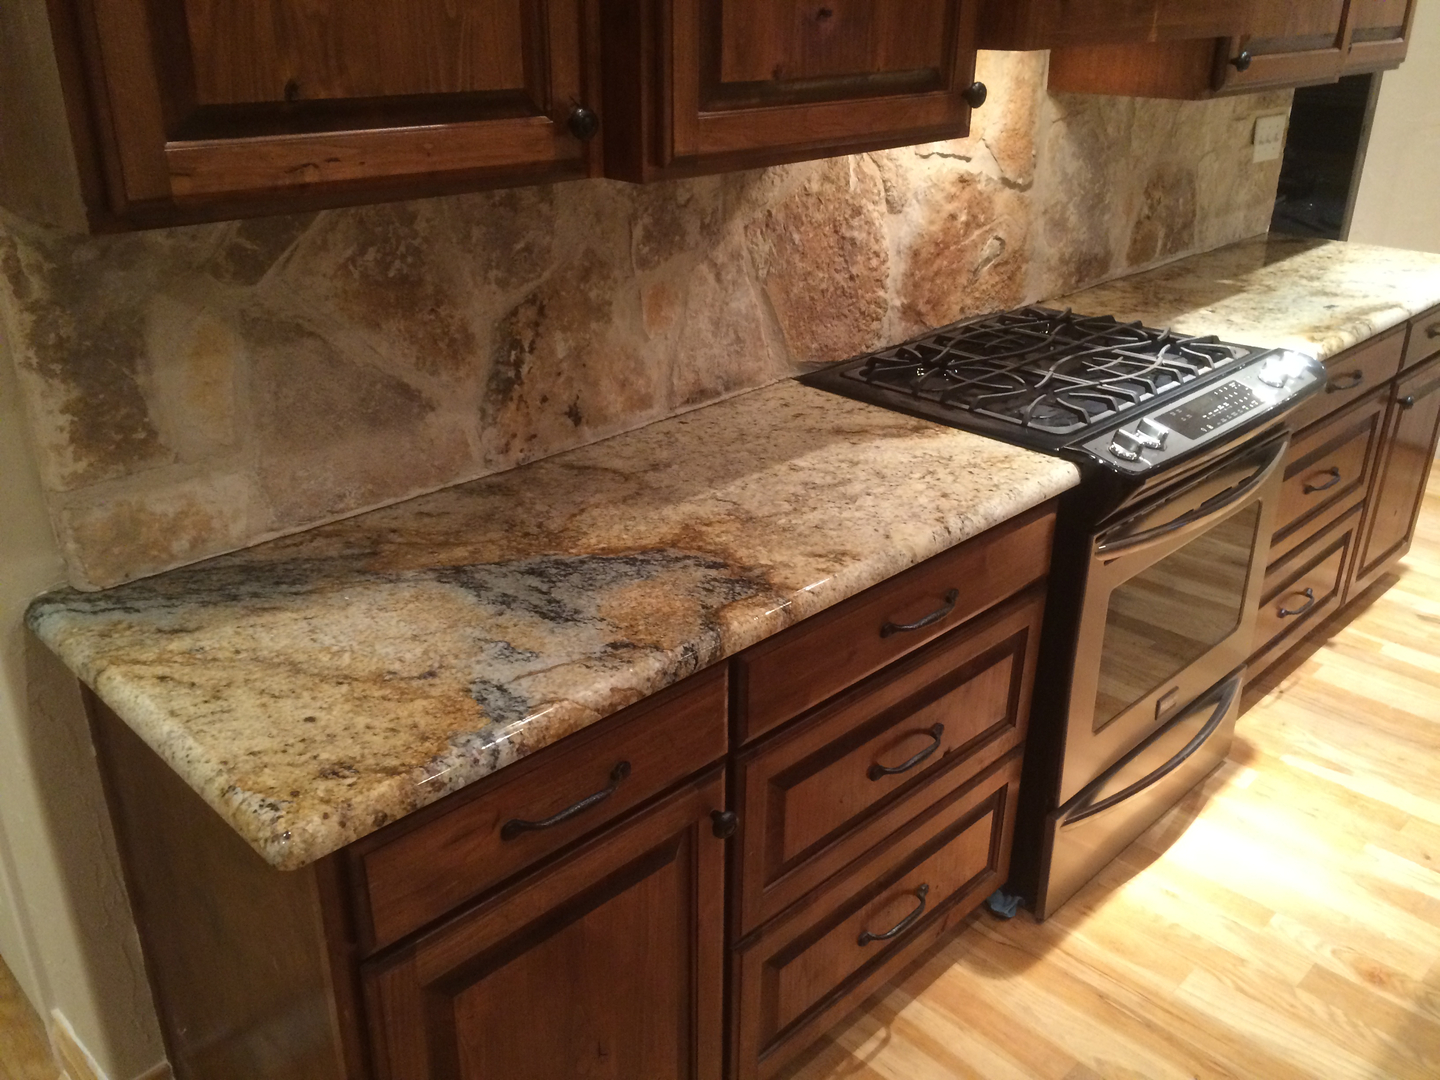 Granite Countertops San Antonio - San Antonio Granite on